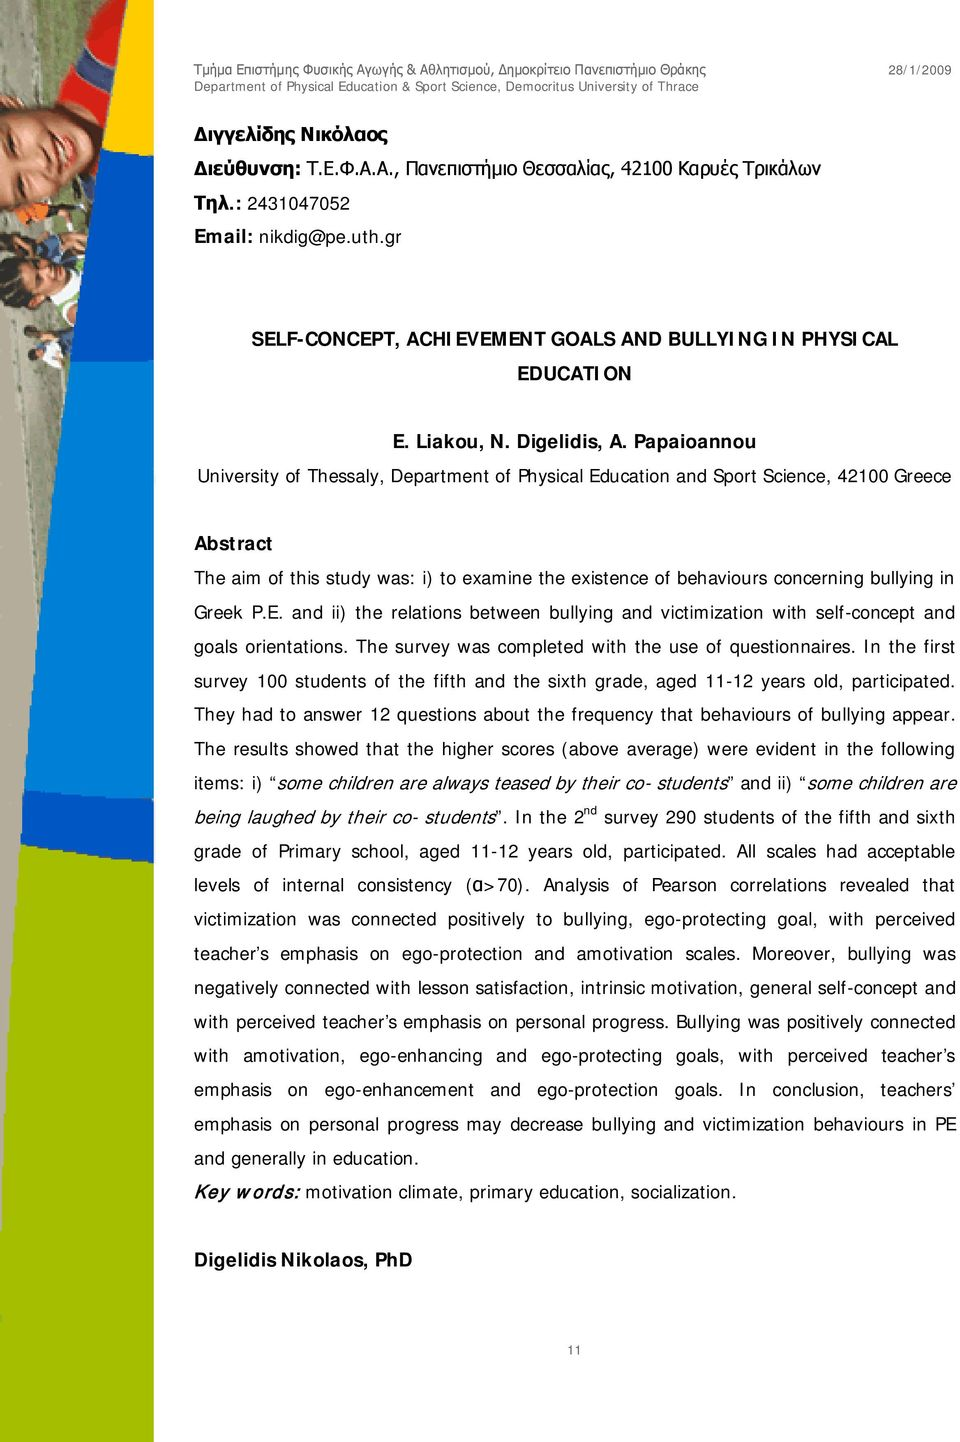 Papaioannou University of Thessaly, Department of Physical Education and Sport Science, 42100 Greece Abstract The aim of this study was: i) to examine the existence of behaviours concerning bullying